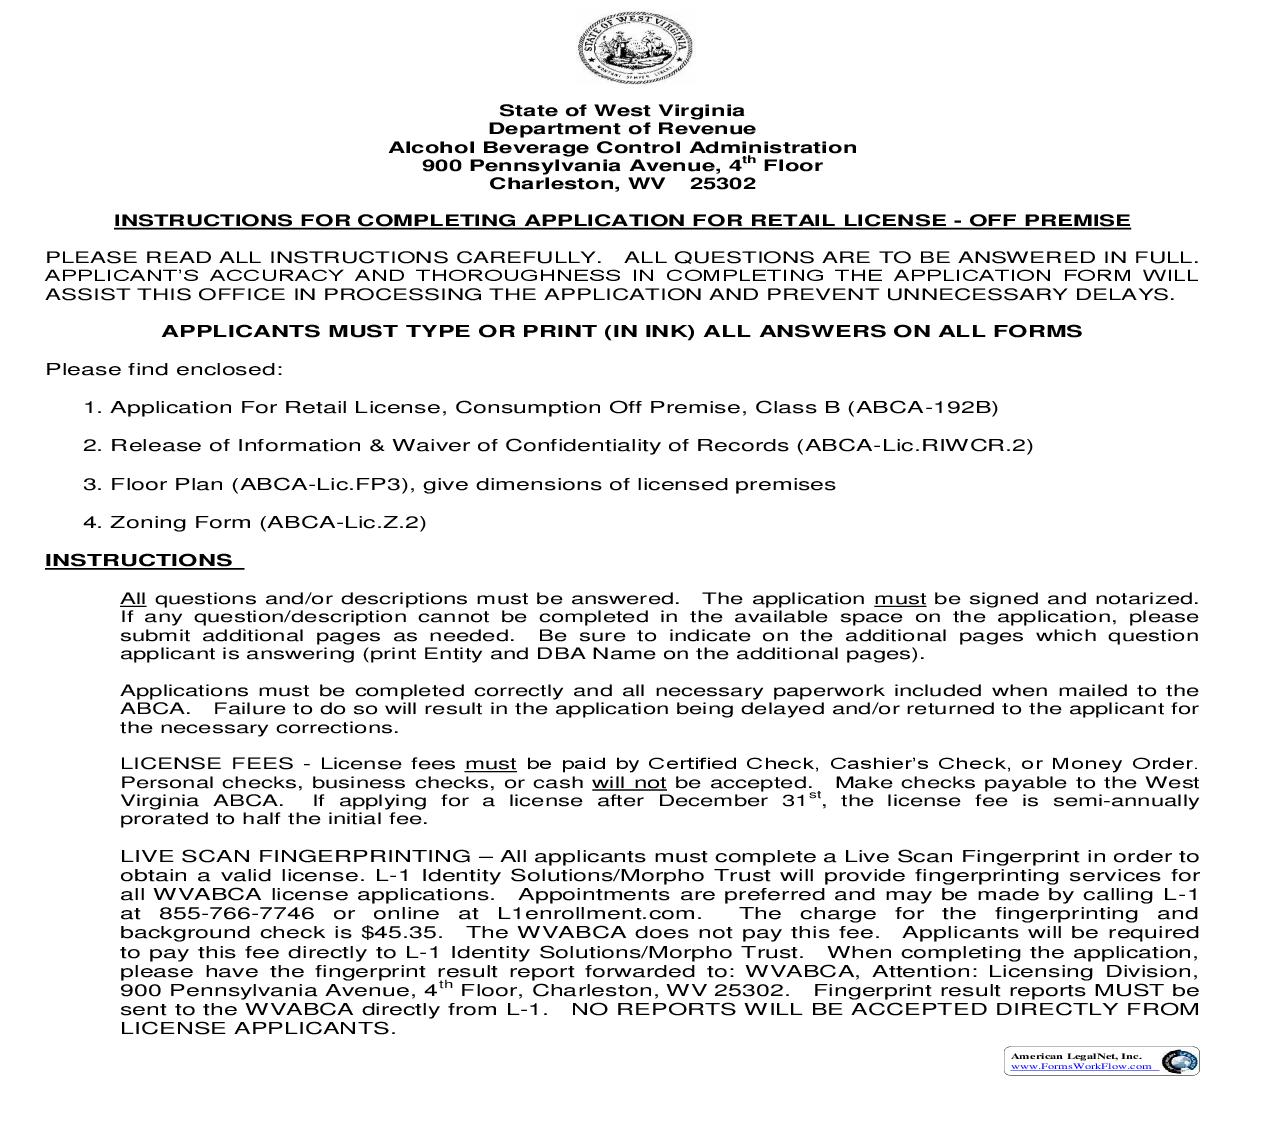 Application For Retail License Off Premise | Pdf Fpdf Doc Docx | West Virginia